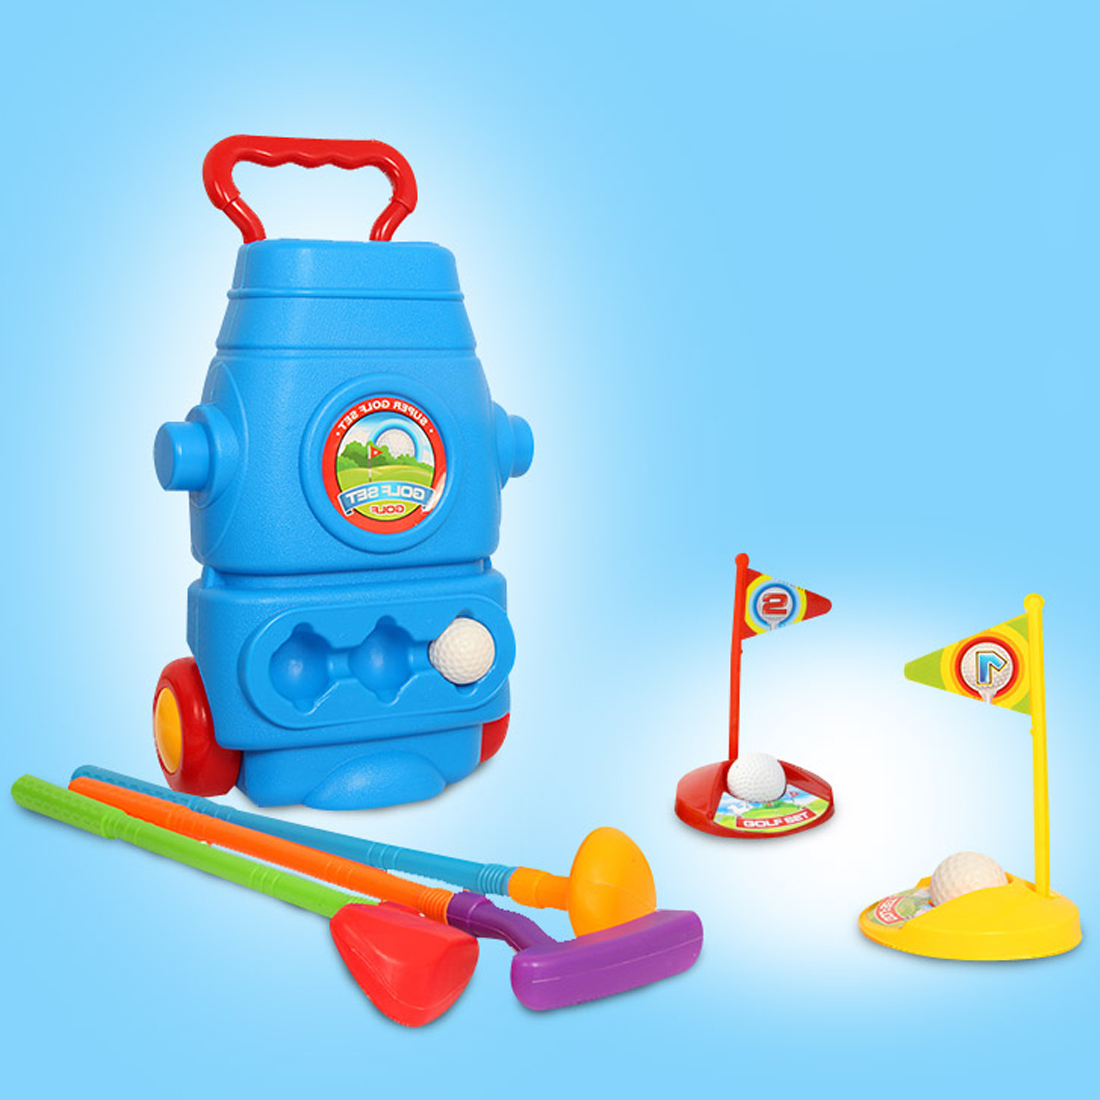 Children Plastic Golf Sports Toy Set Kids Golf Game Toy With 3 Clubs 2 Holes 3 Balls Outdoor Toys Games For Children in Toy Balls from Toys Hobbies